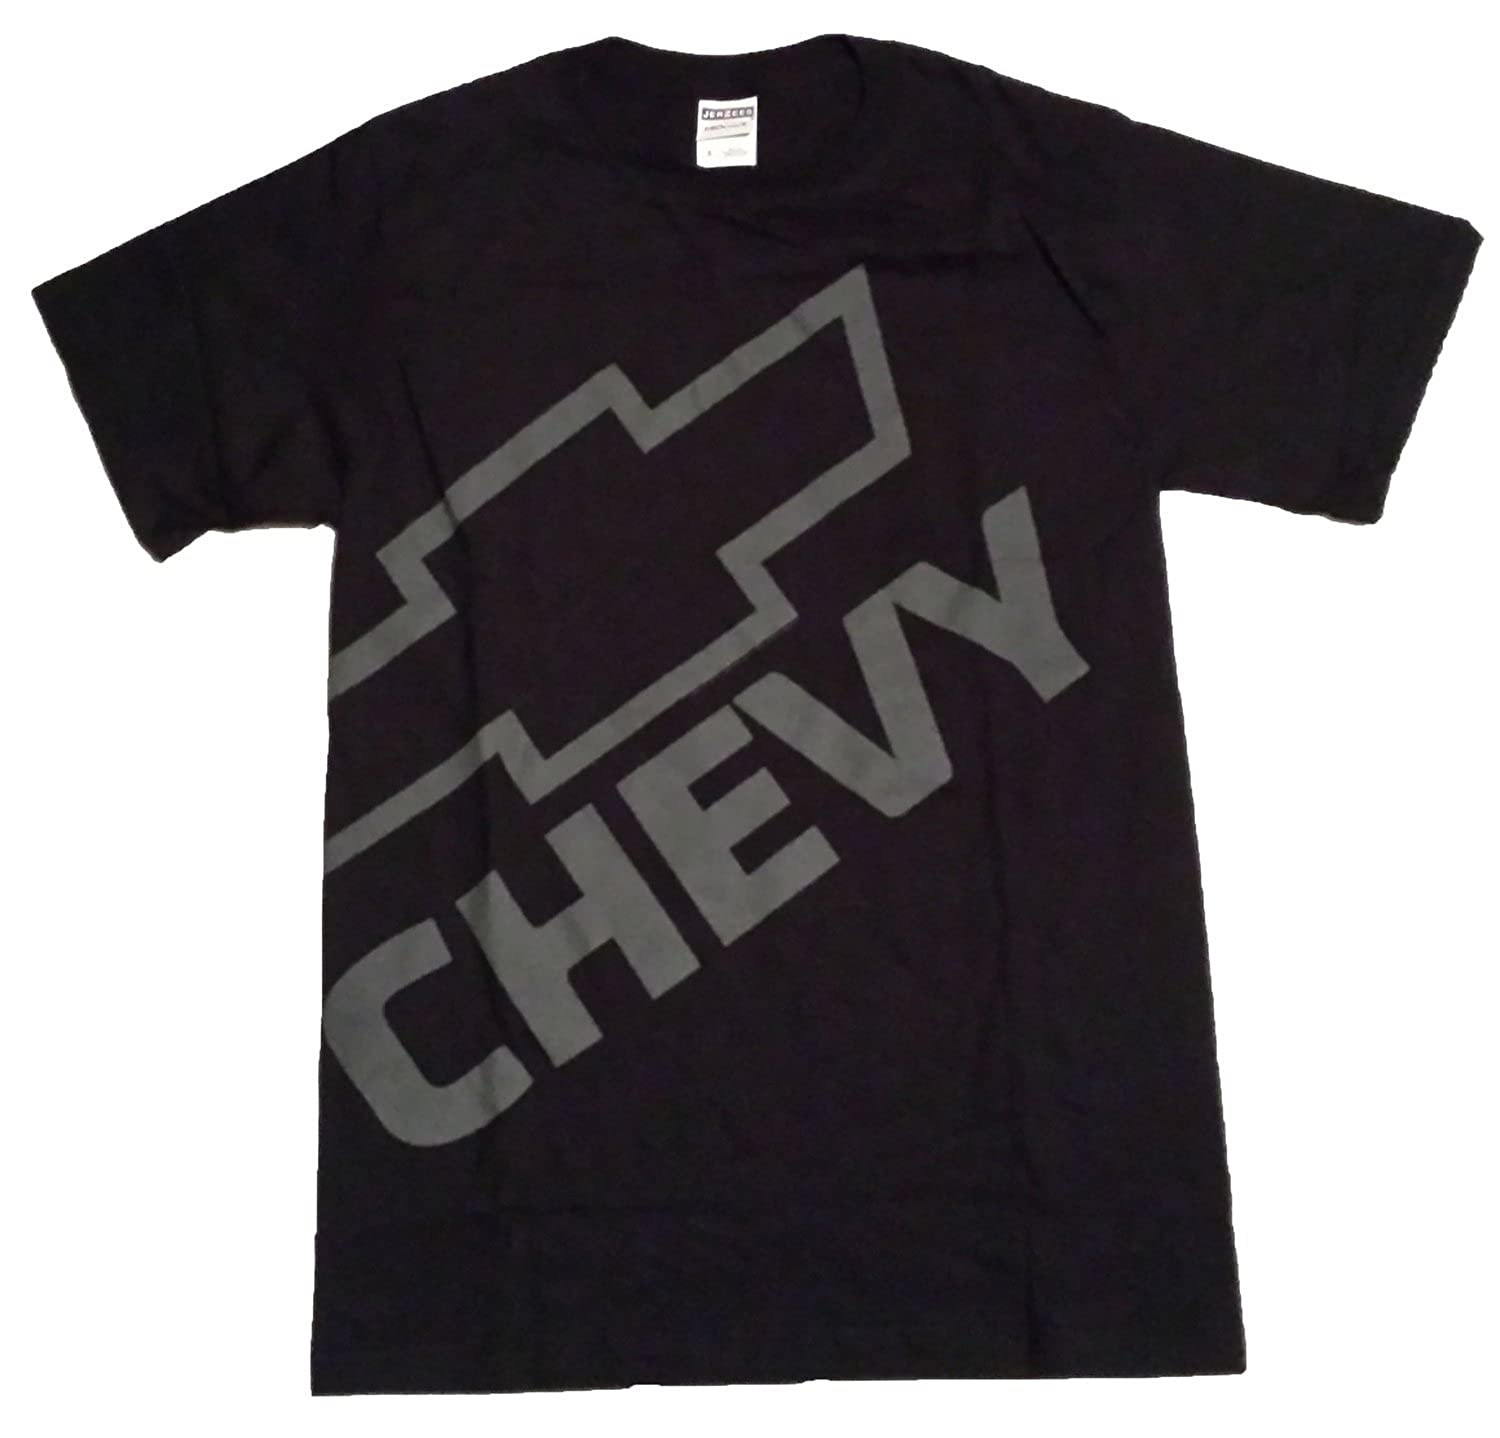 Chevrolet Shirts Chevrolet T Shirts Chevy Shirt Chevy T ...